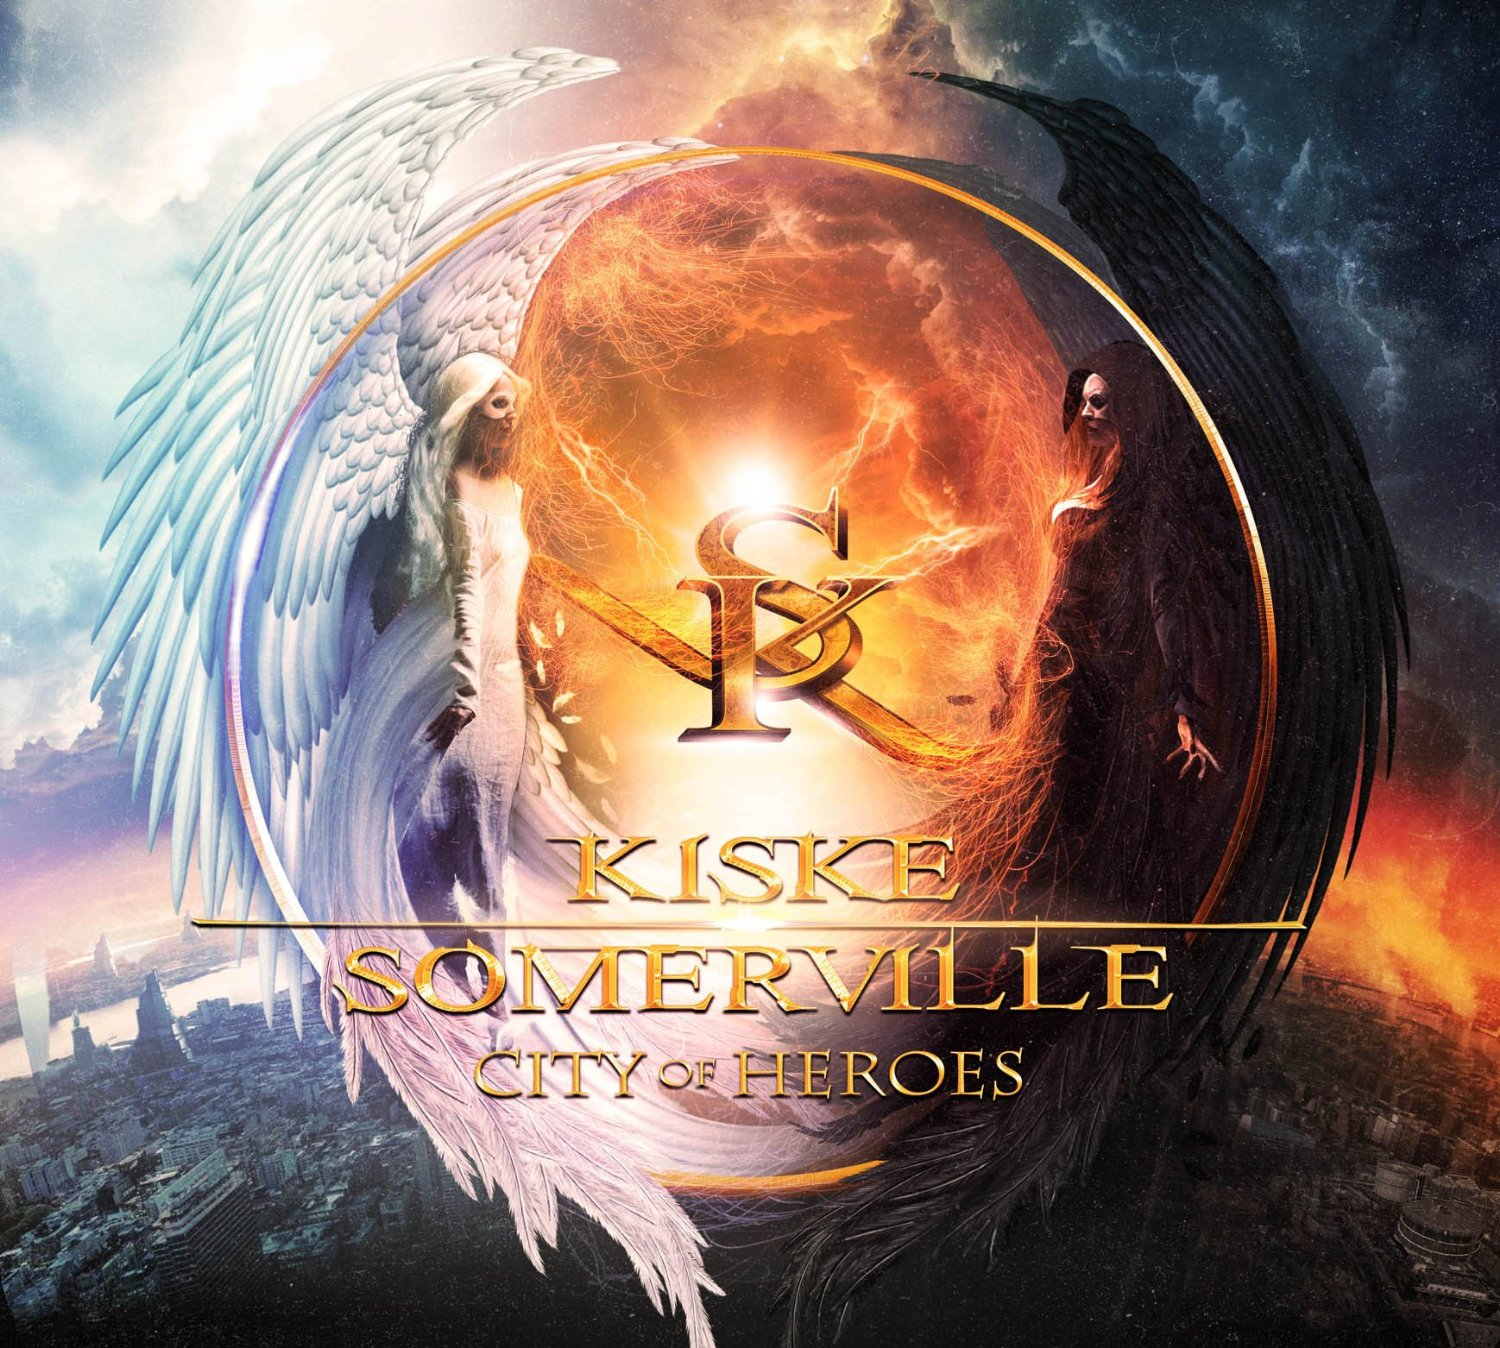 Kiske & Sommerville: City of Heroes (2015) Book Cover